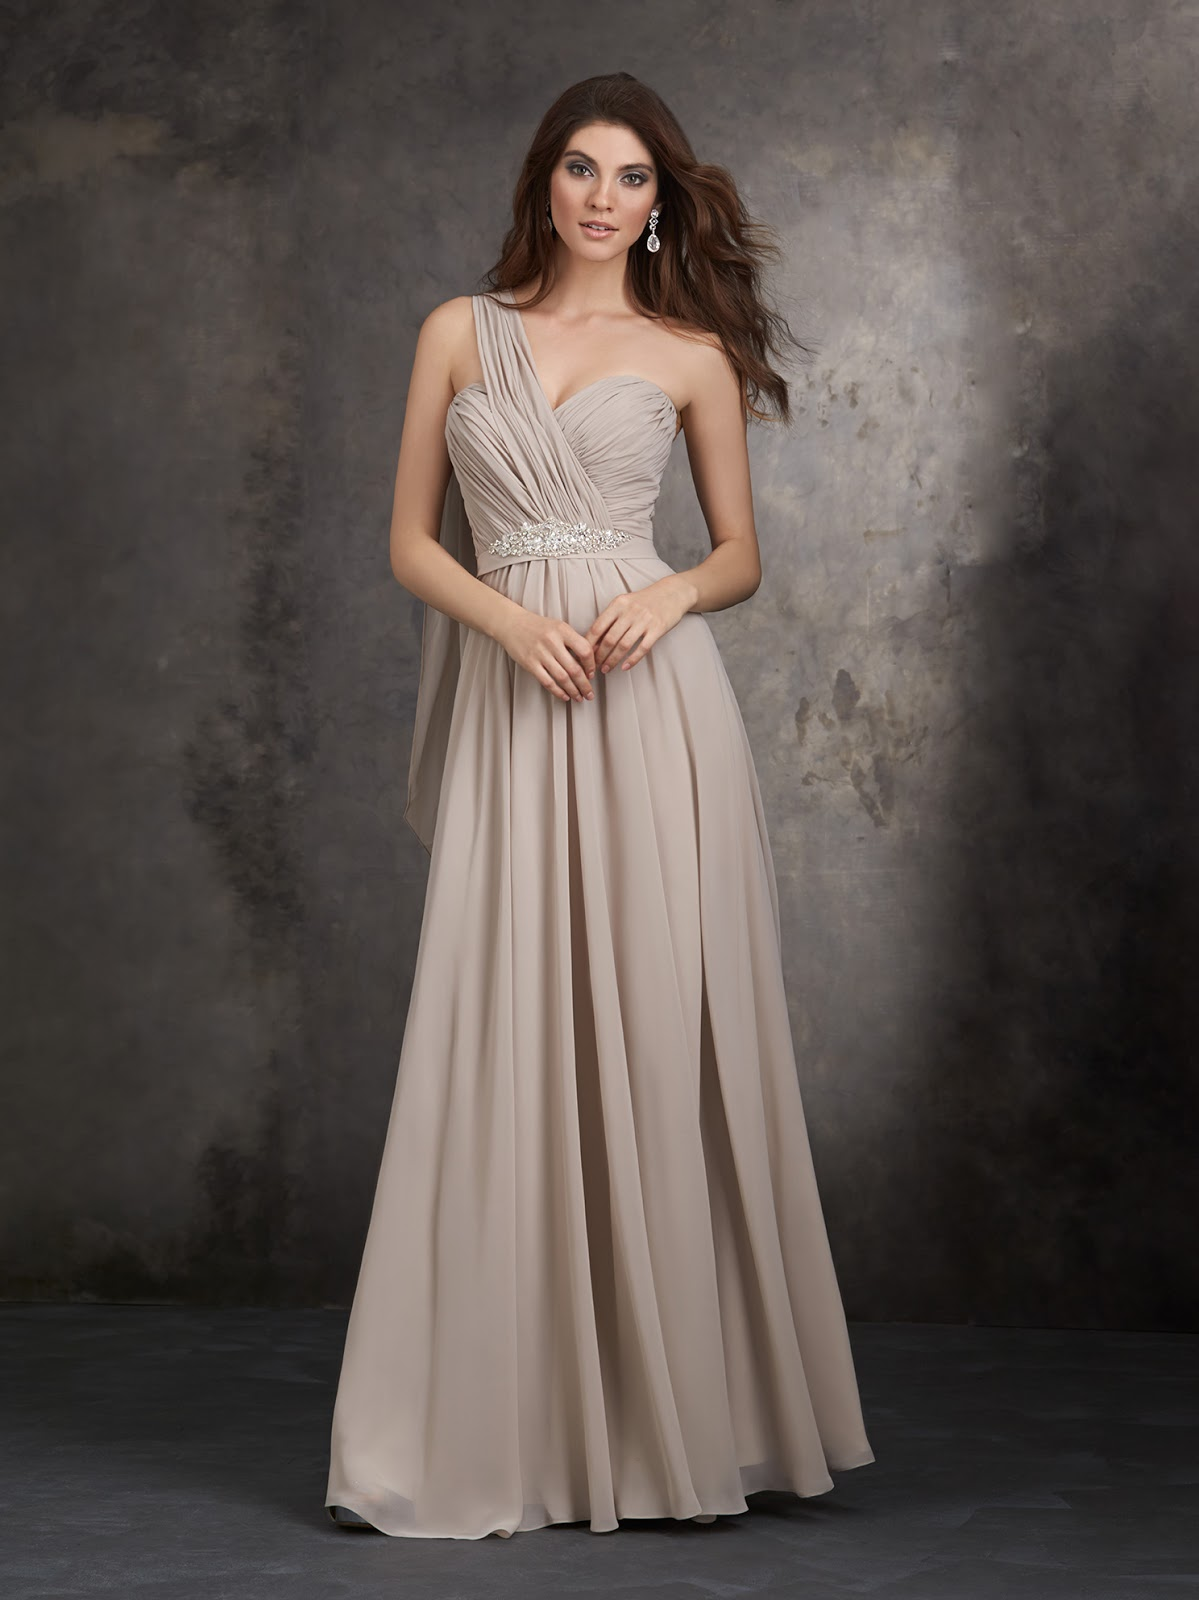 Designed Salford Elegant A-Line Floor-Length One-Shoulder Latest Bridesmaid Dresses